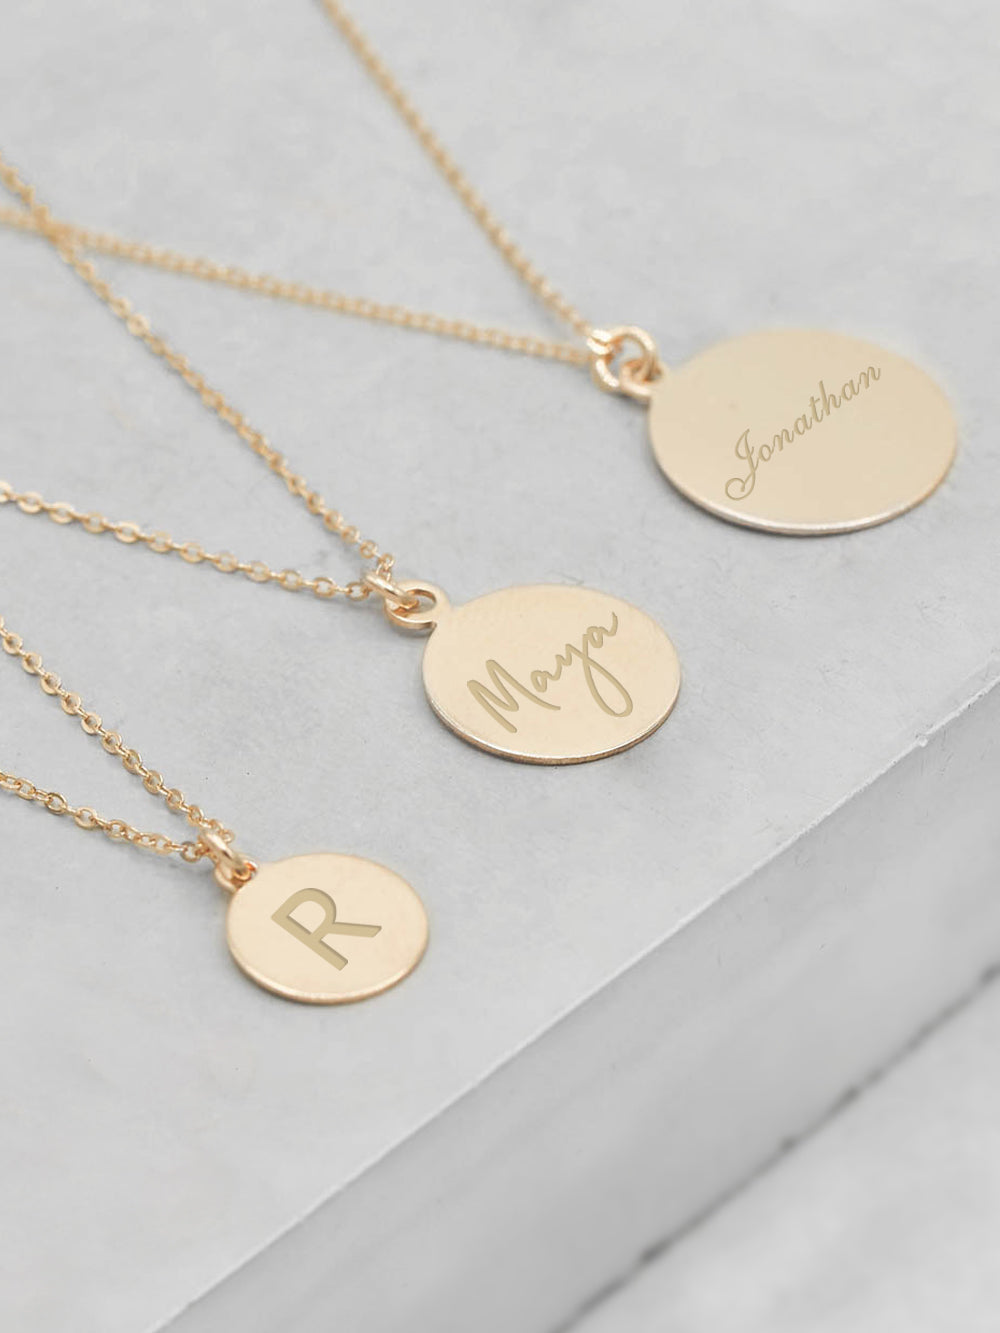 Engraved Coin Necklace - Gold